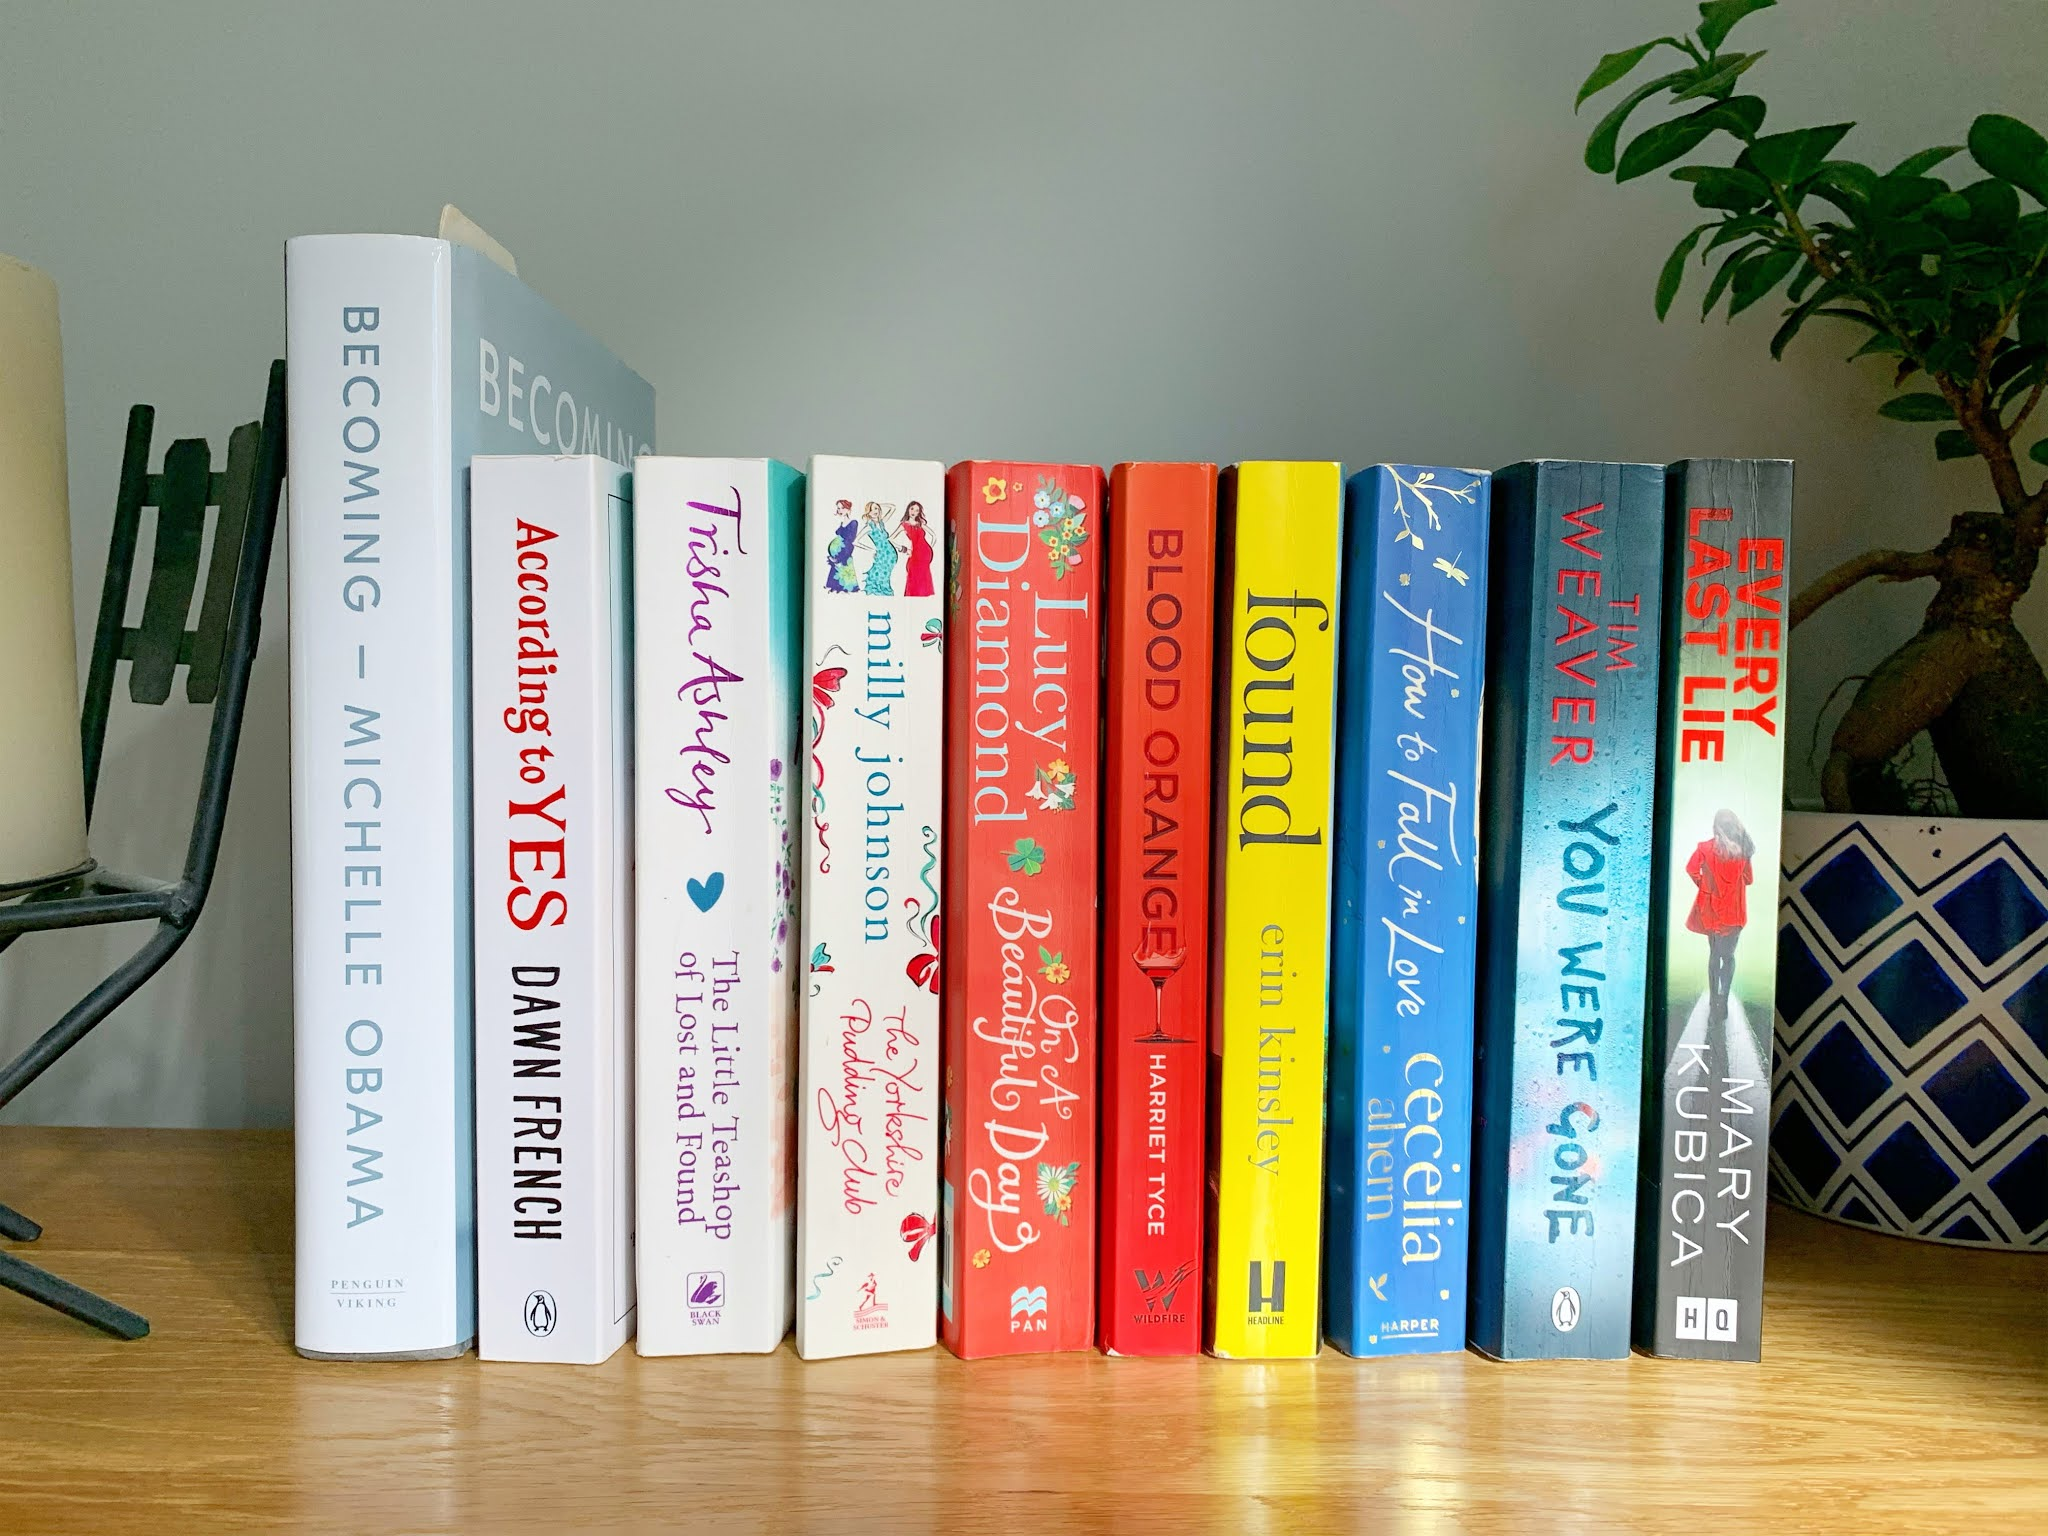 10 books on a shelf